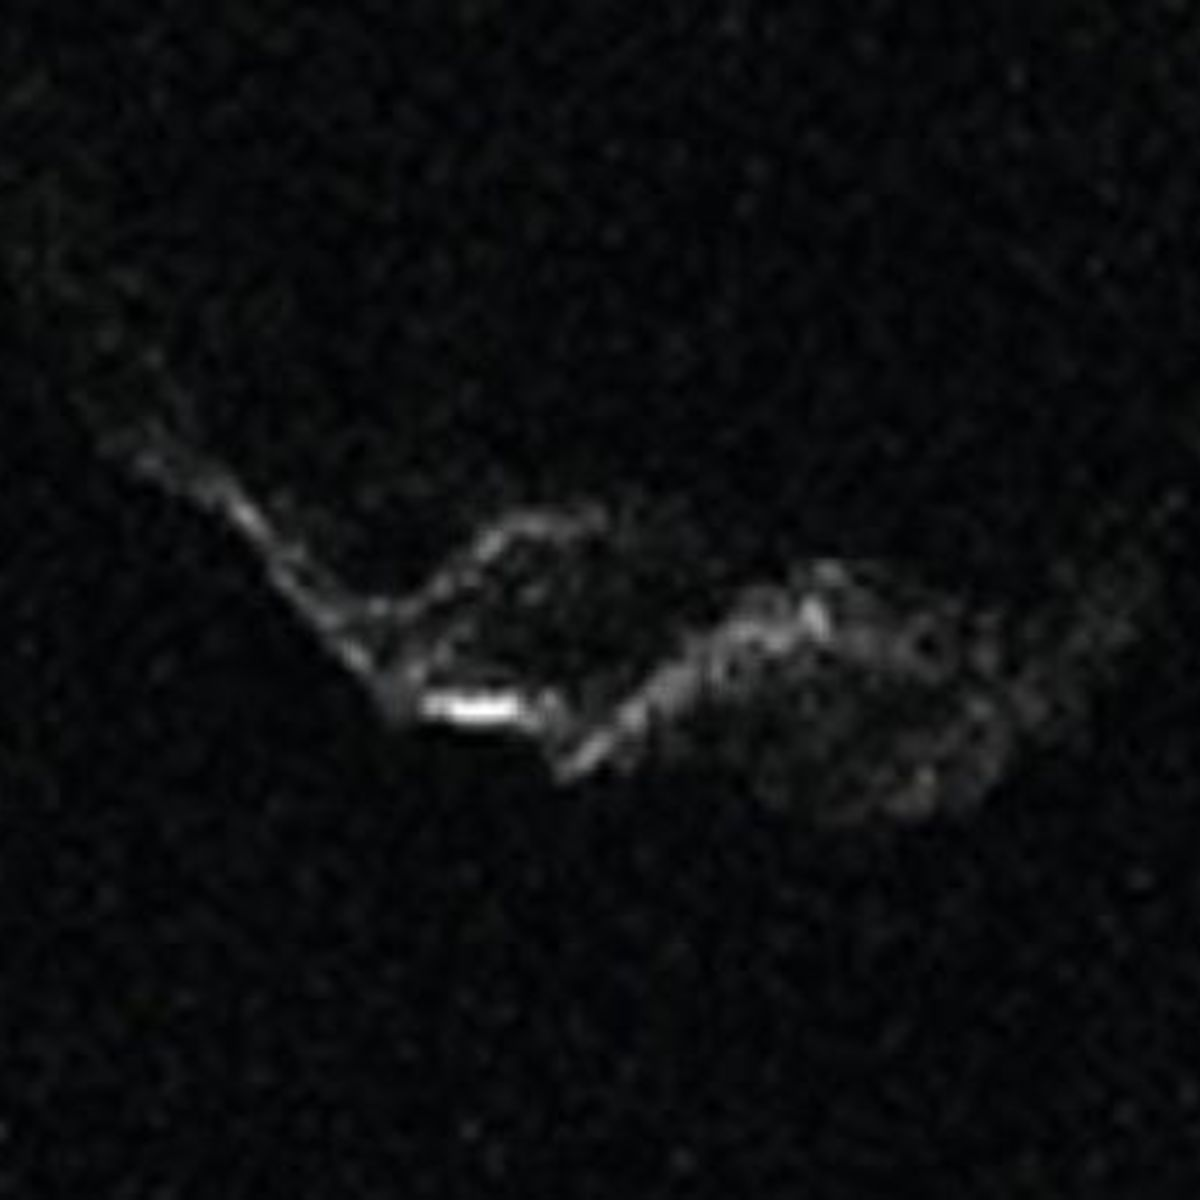 arecibo_comet209plinear354.jpg.CROP.rectangle-large.jpg